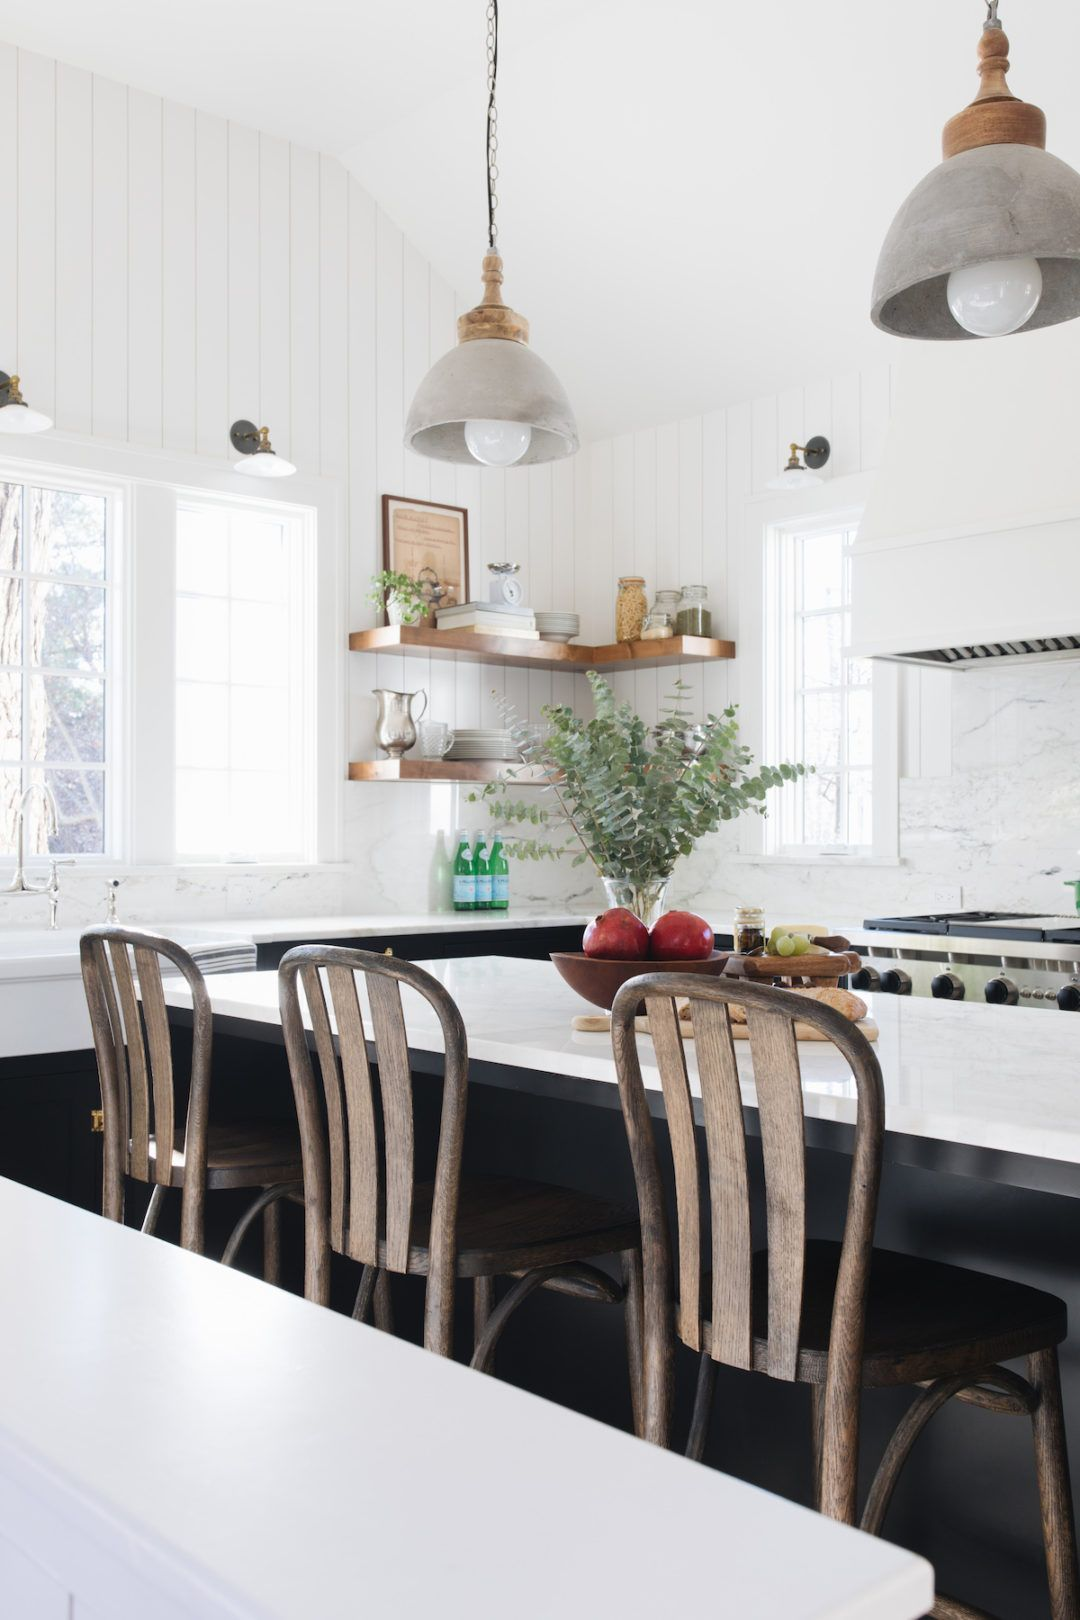 An updated home inspired by the english countryside